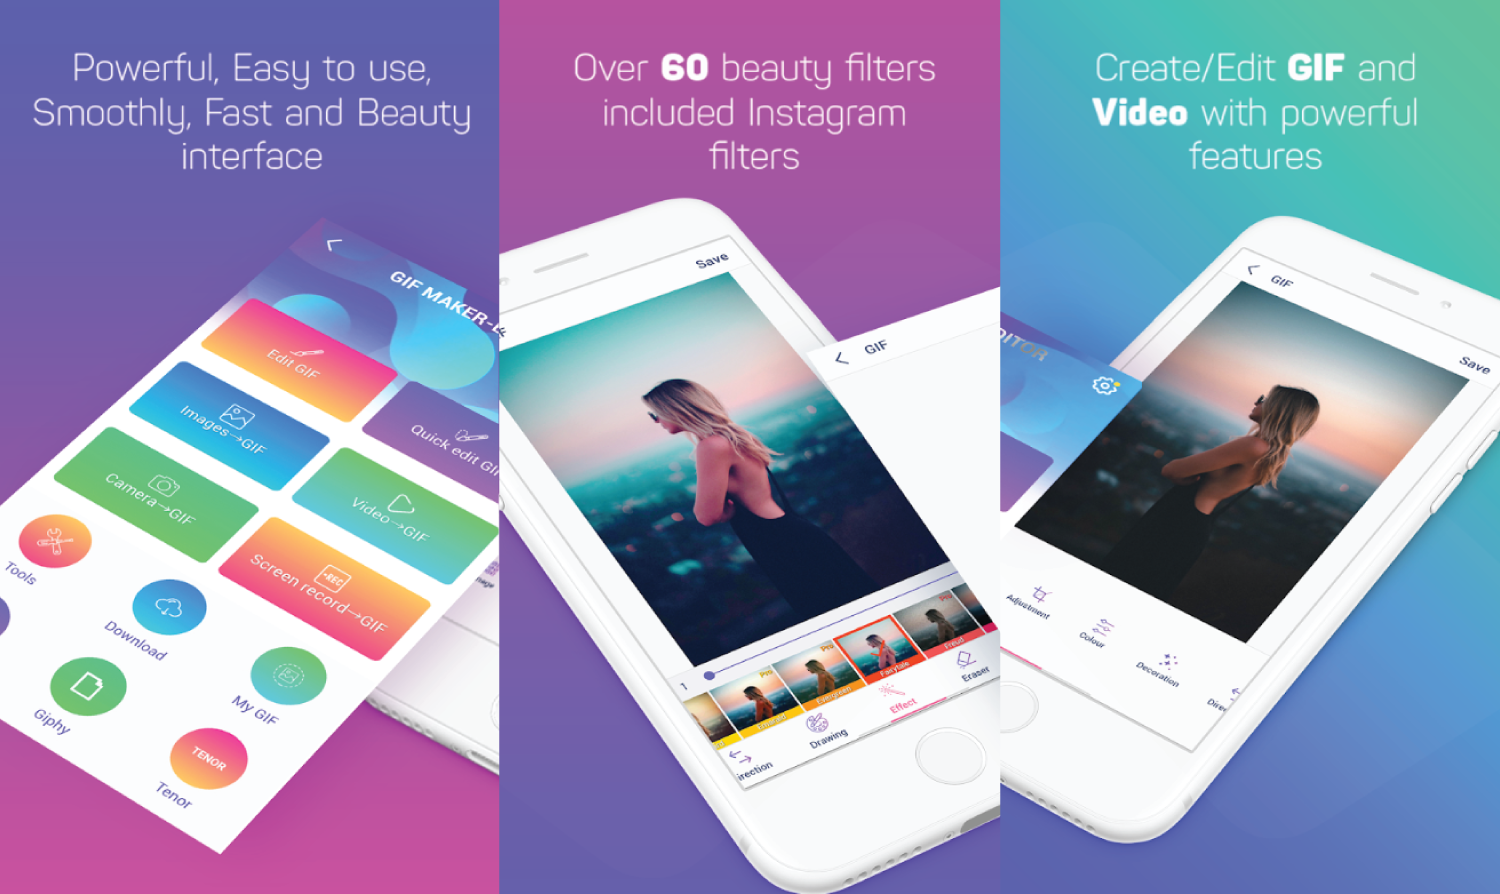 Best GIF Maker Apps for Android